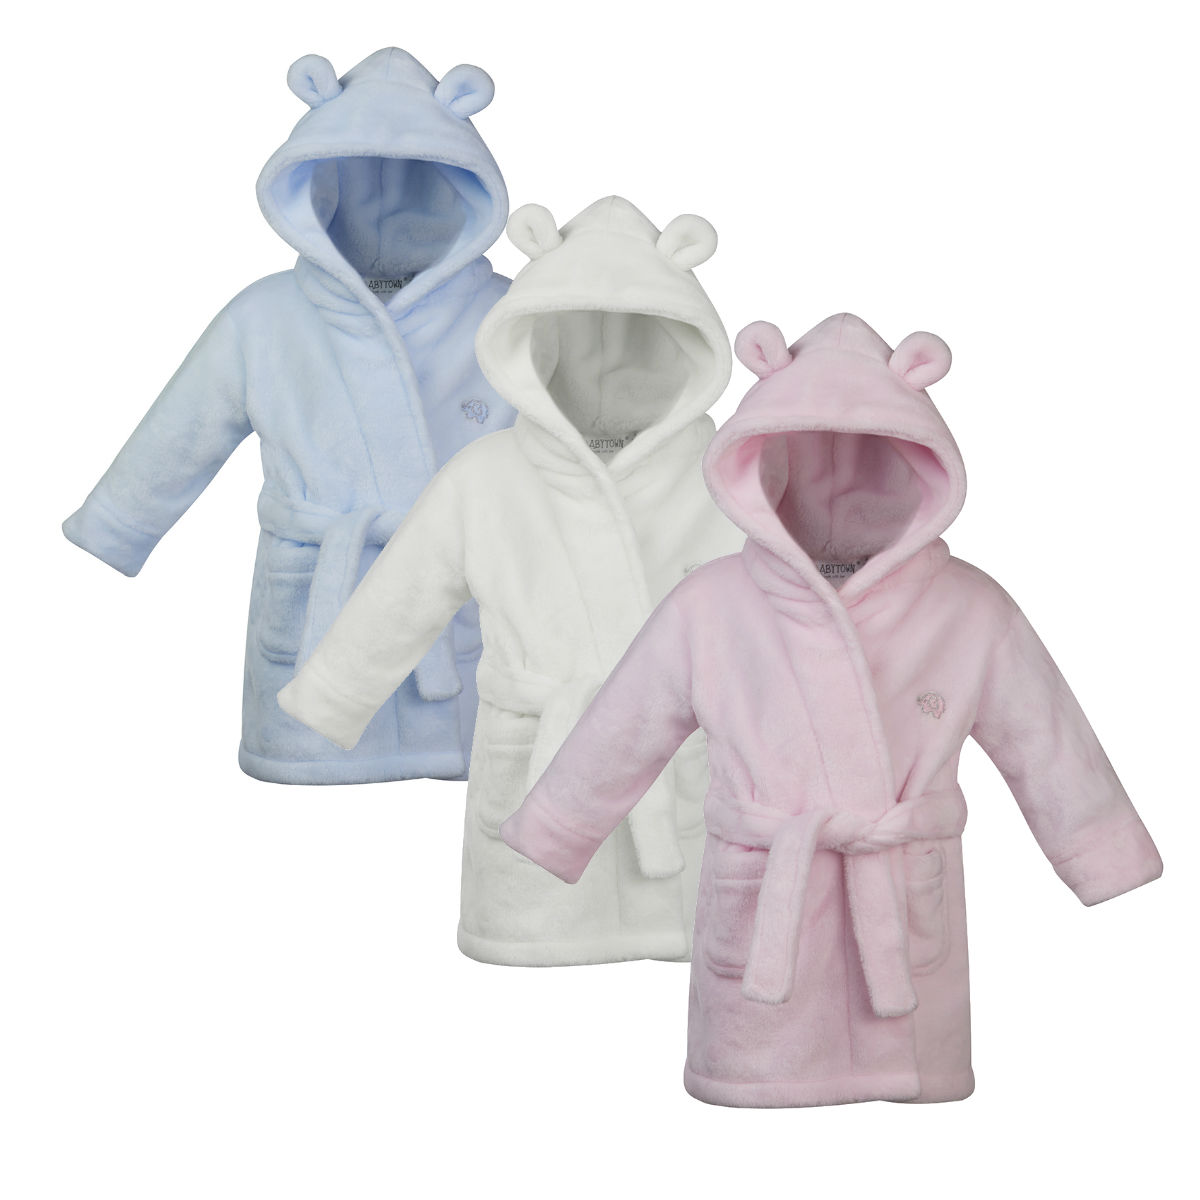 Novelty Baby Gifts Uk : Baby girls boys dressing gown fleece snuggle robe hooded